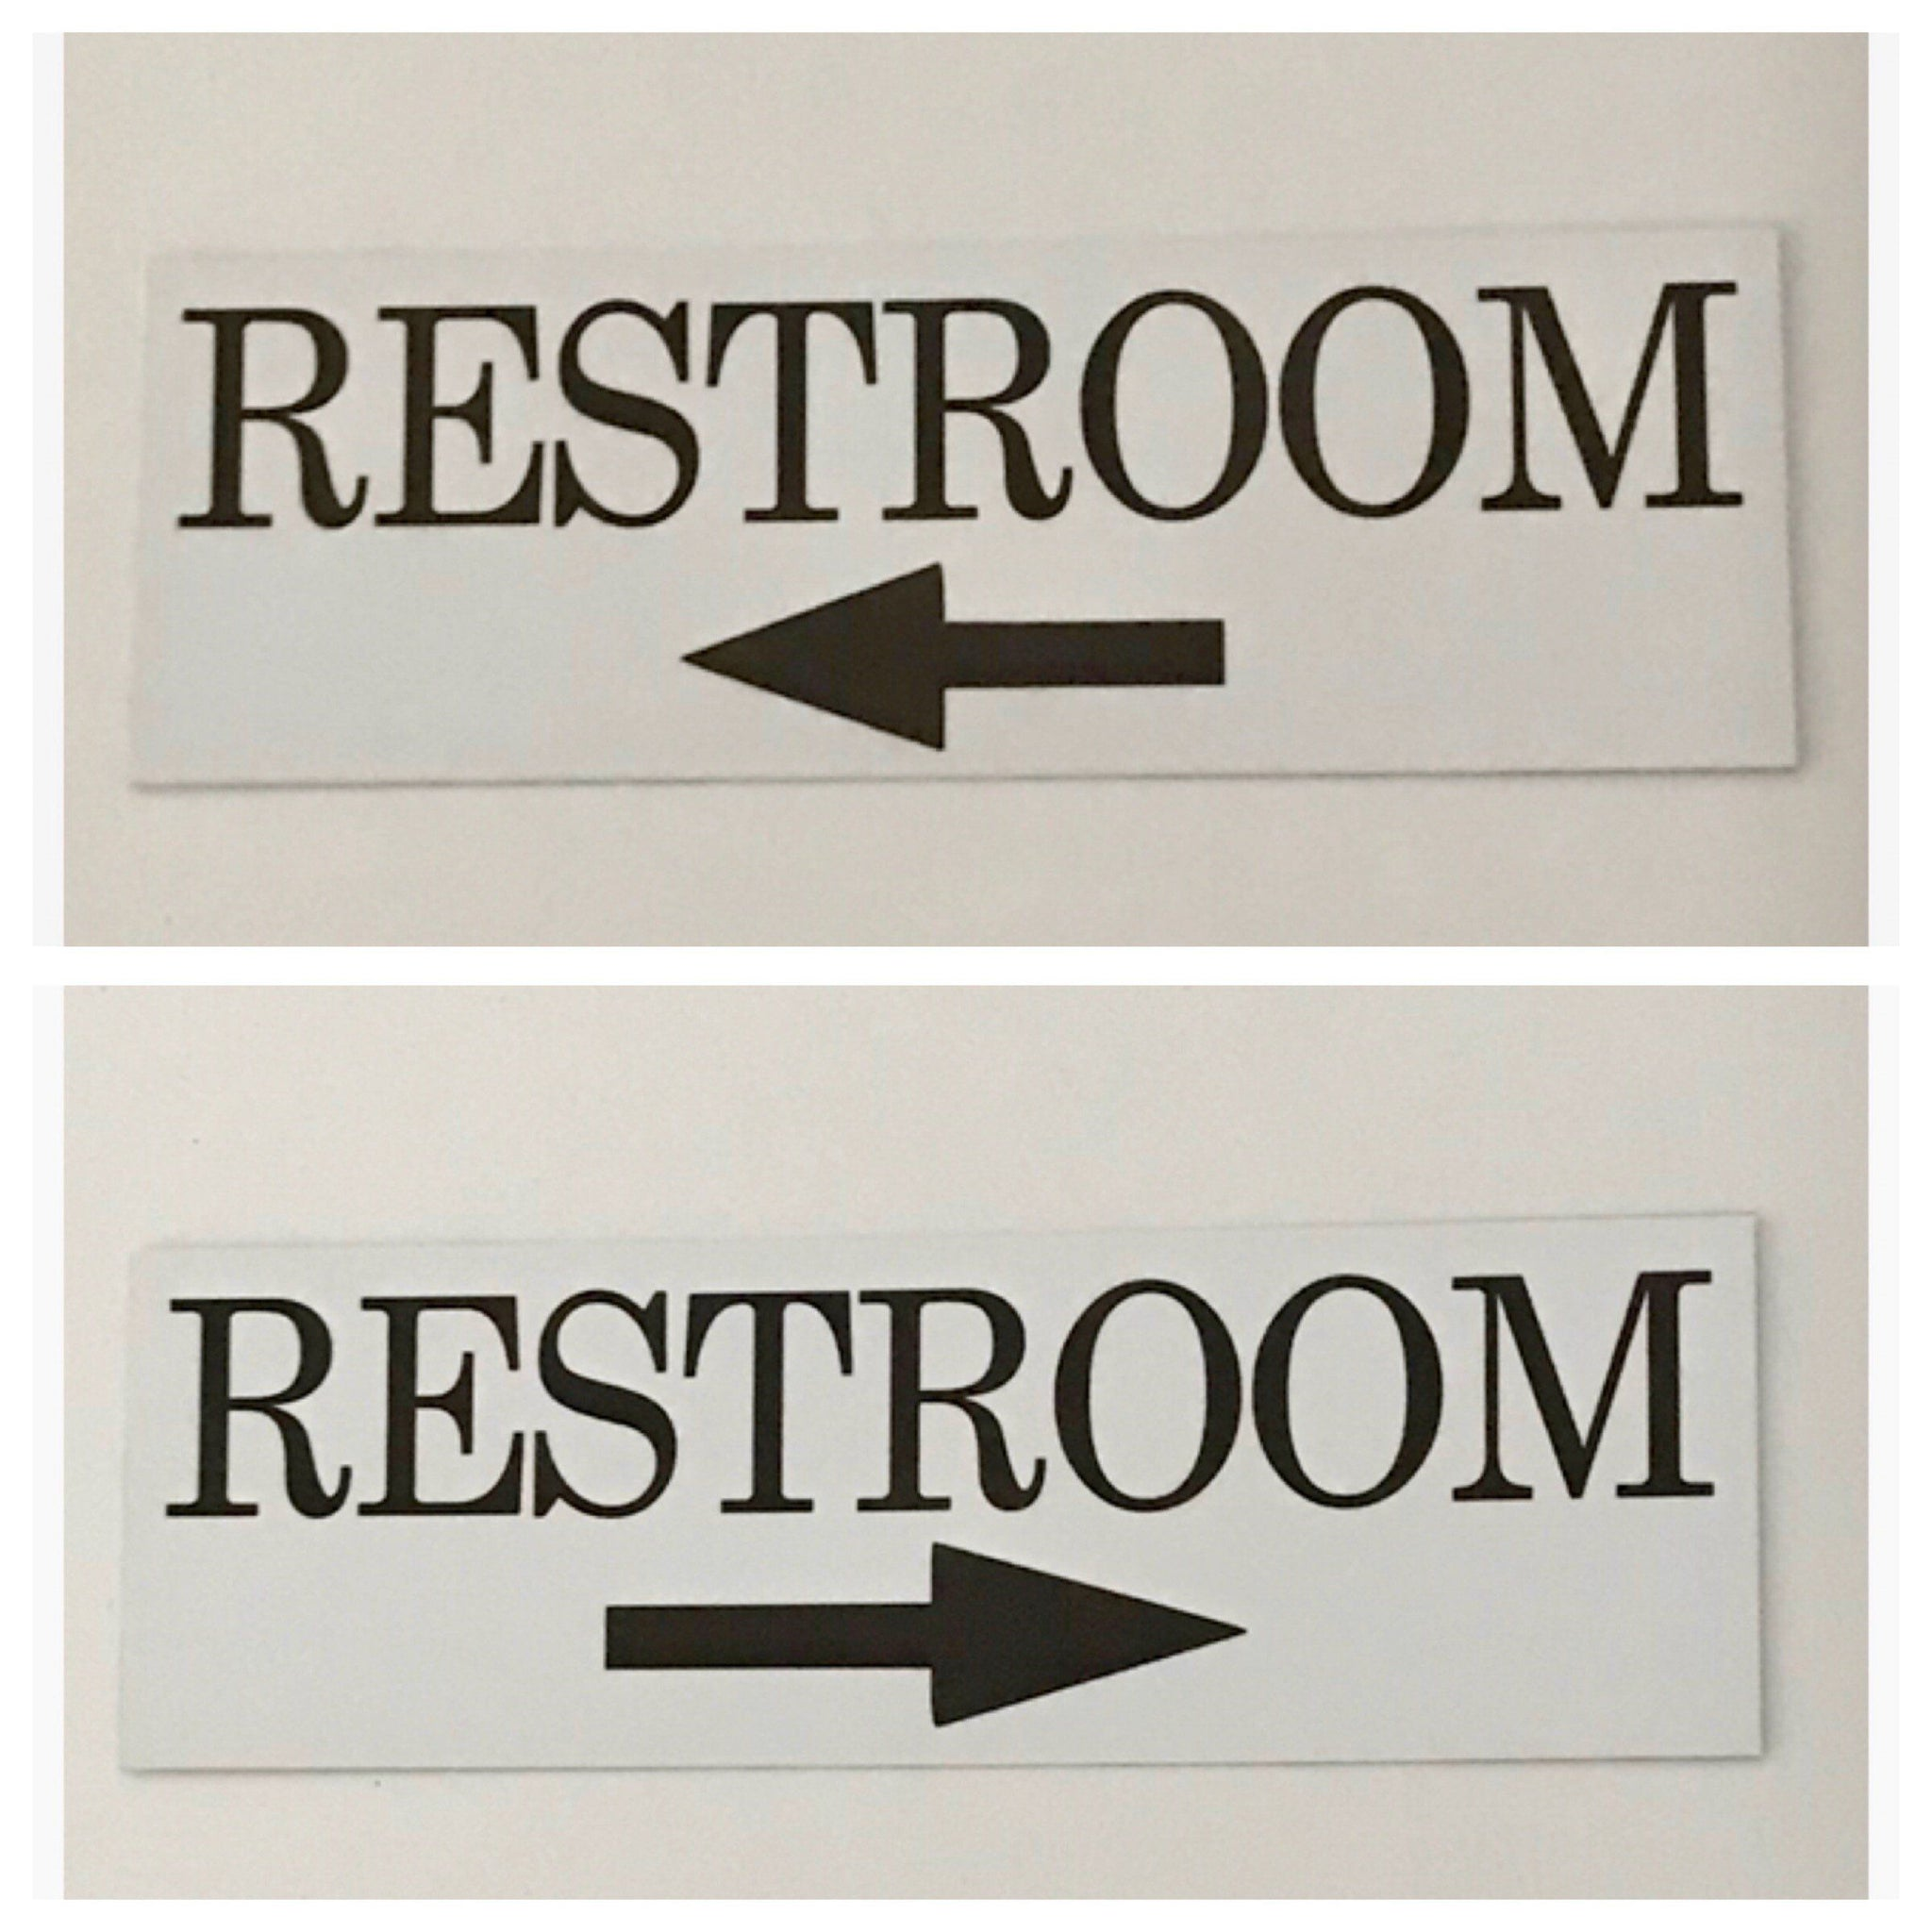 Restroom Toilet with Arrow Sign Plaque or Hanging - The Renmy Store